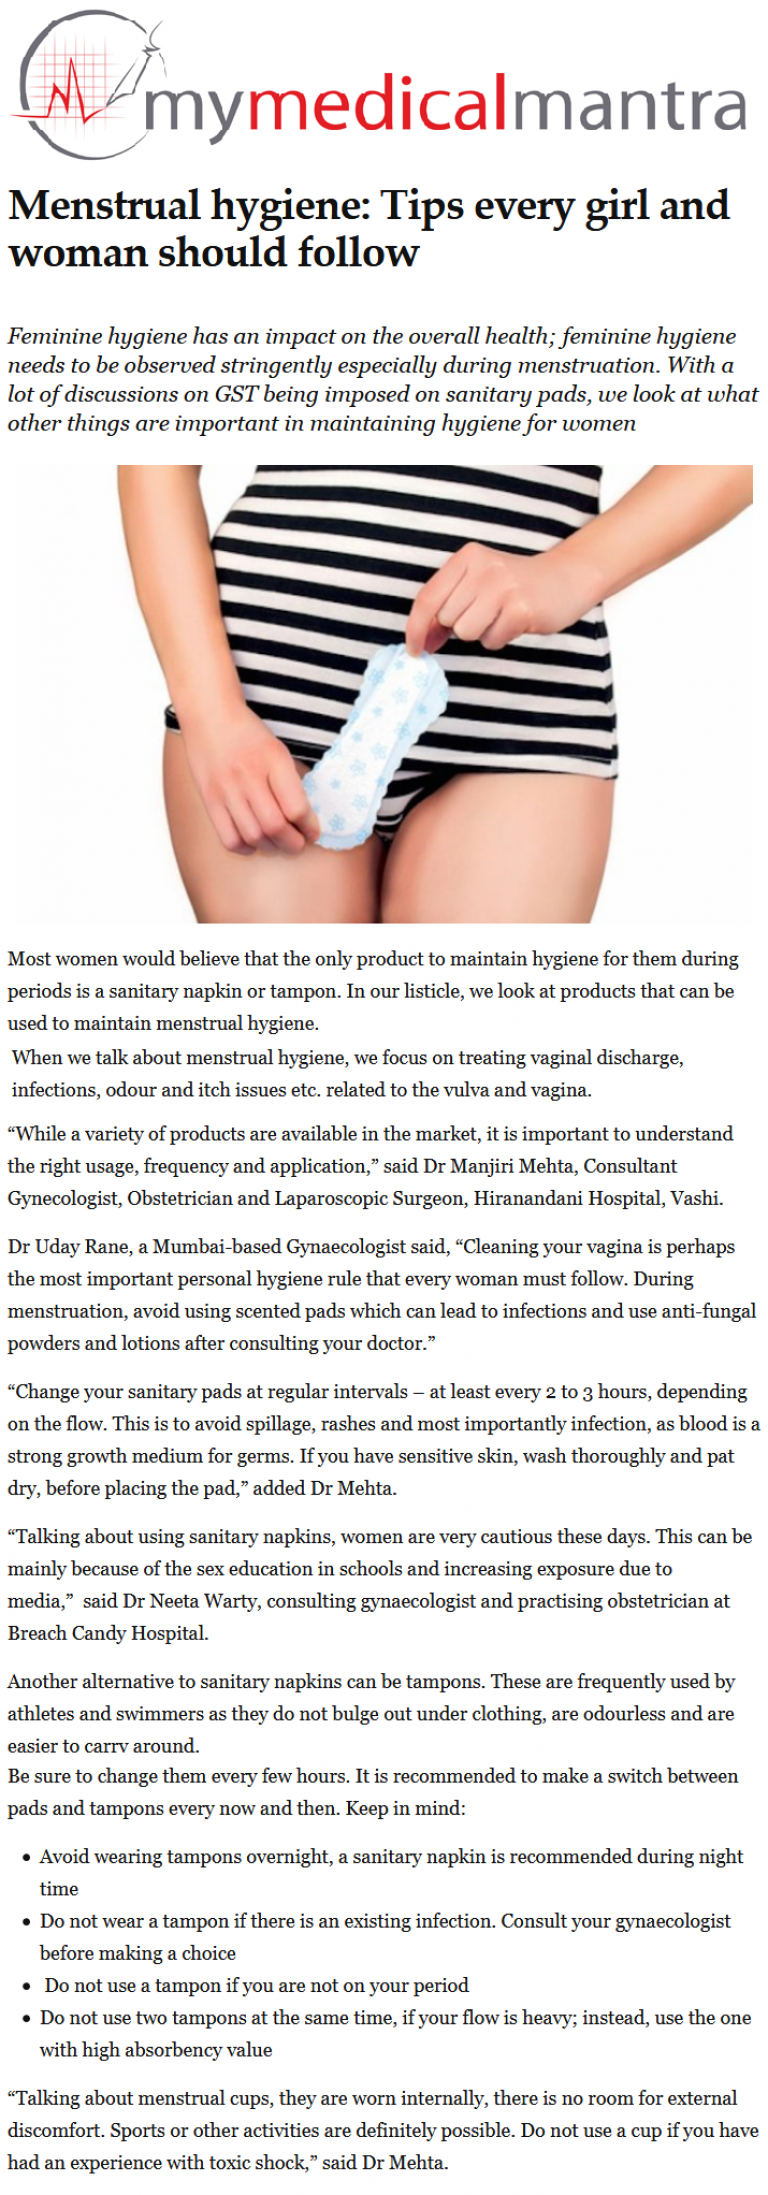 News - Menstrual Hygiene: Tips Every Girl and Woman Should Follow